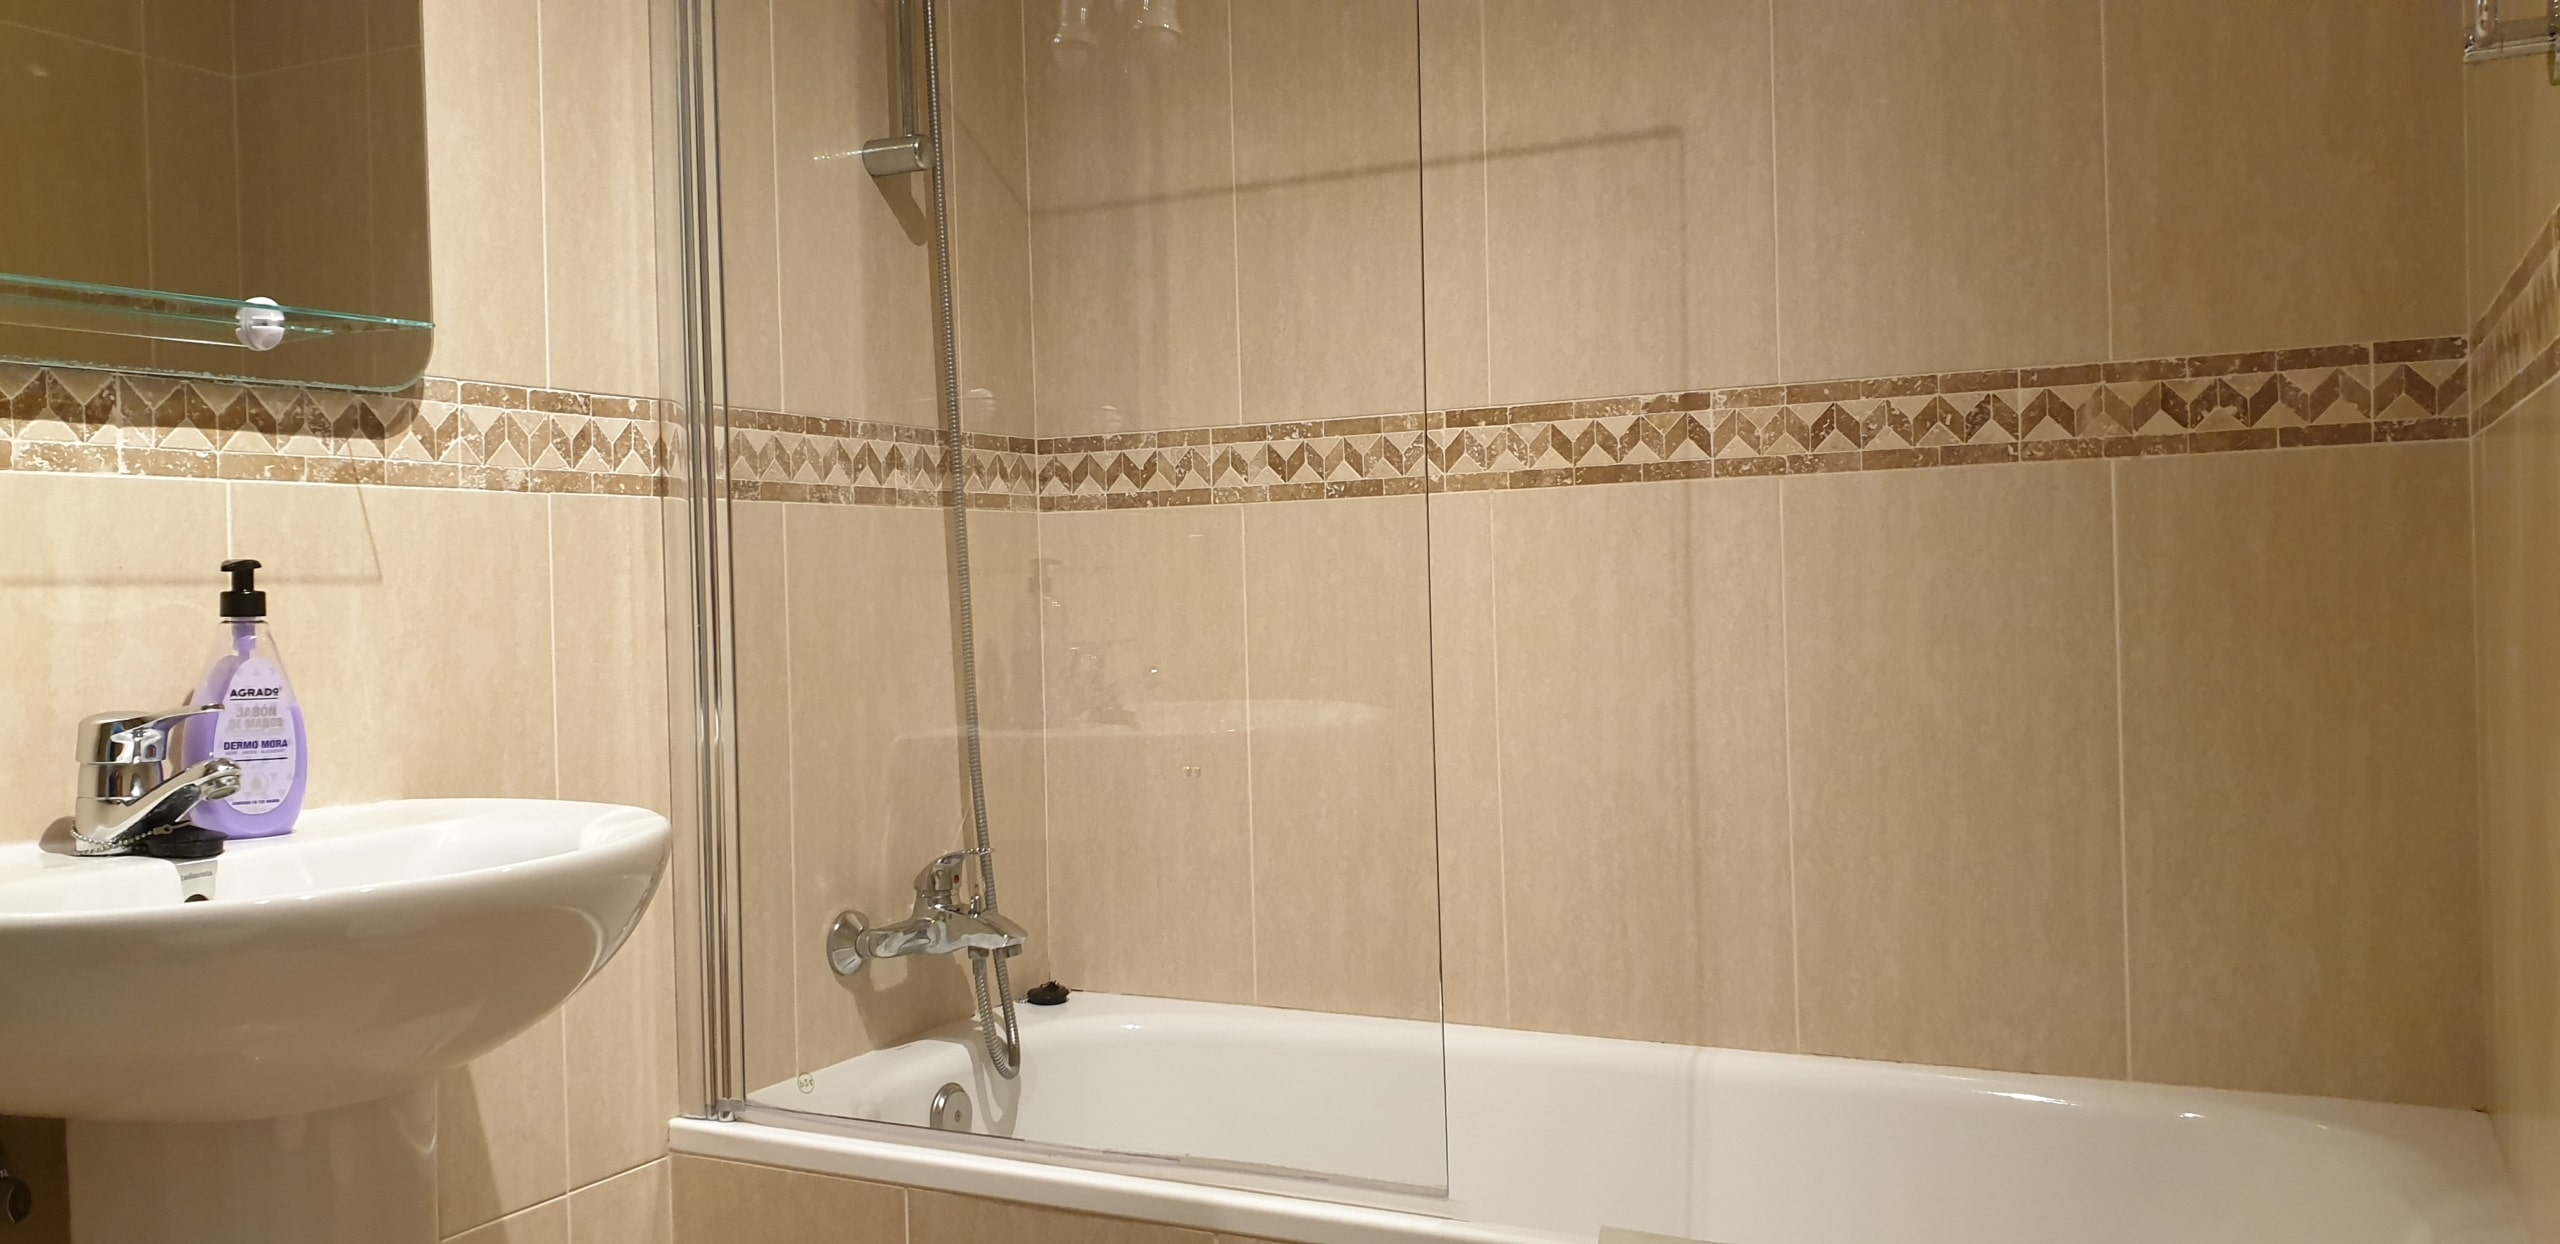 Shower connecte with Master Bedroom